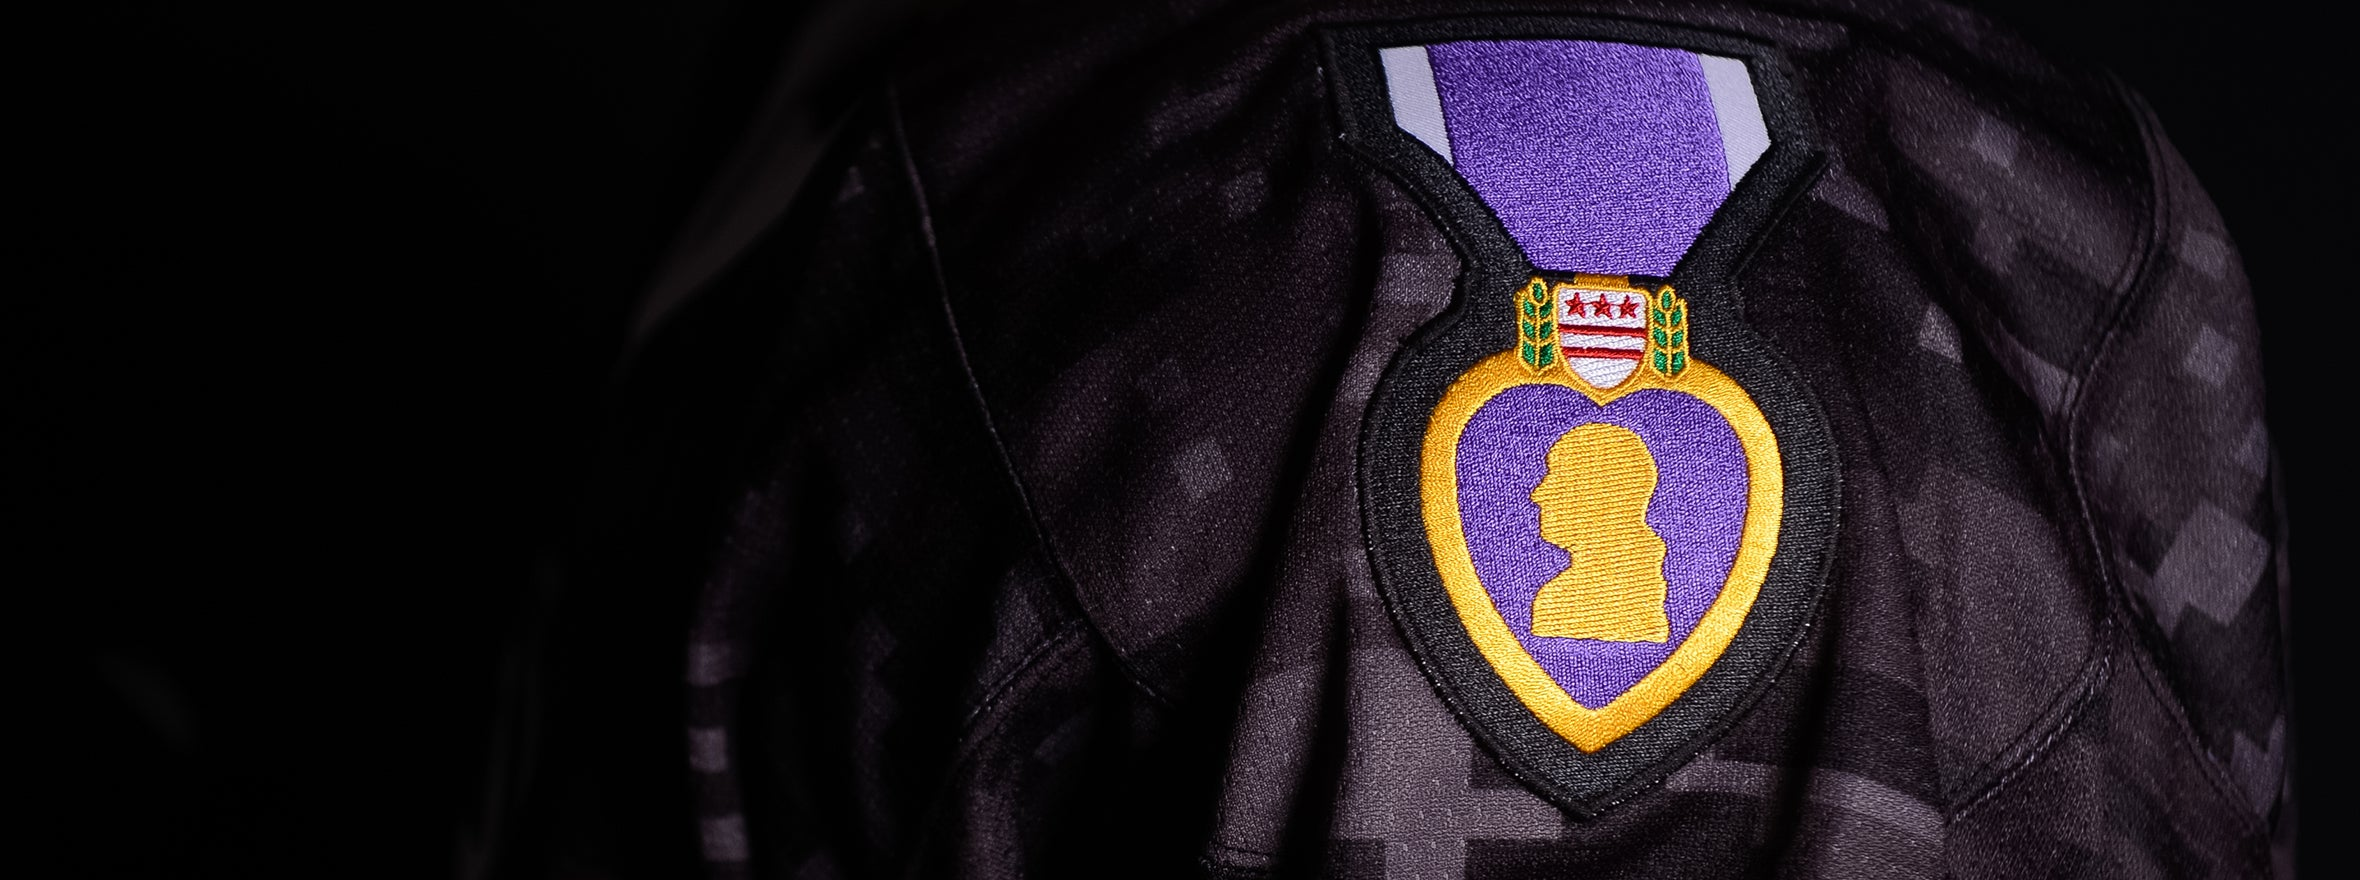 EVERYTHING YOU NEED TO KNOW ABOUT PURPLE HEART NIGHT